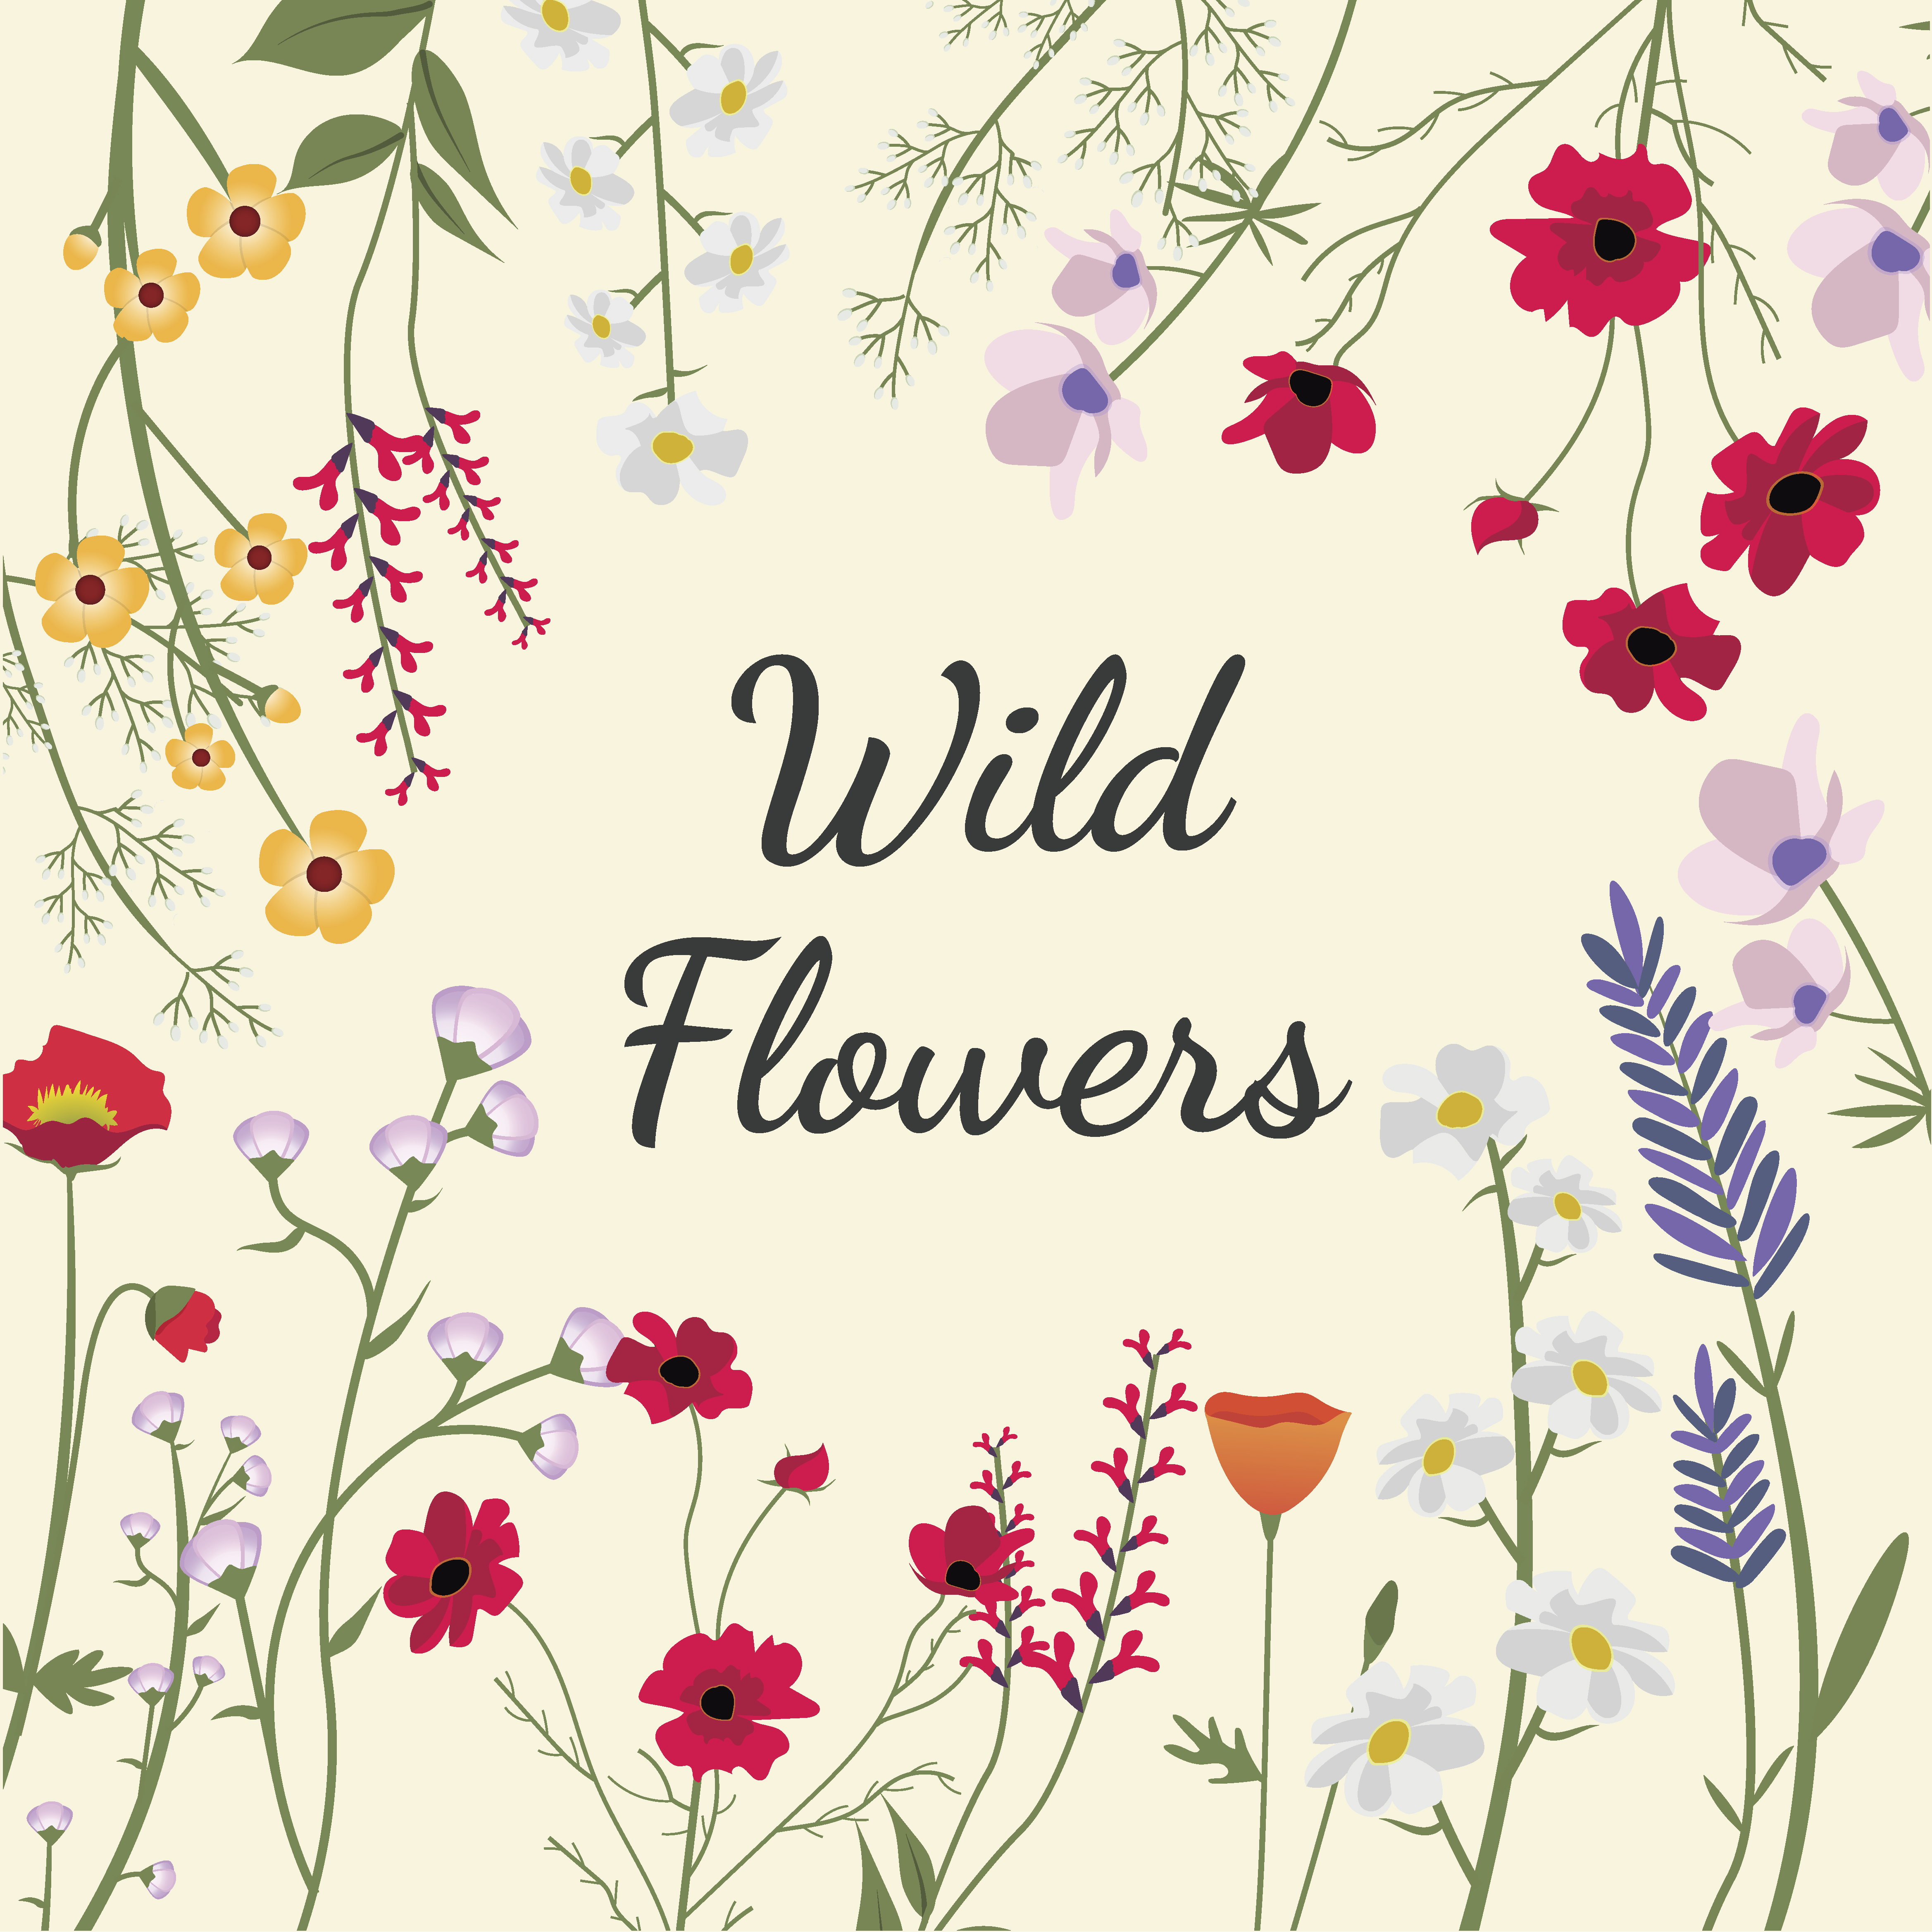 Download Illustrated wild flowers - Download Free Vectors, Clipart ...